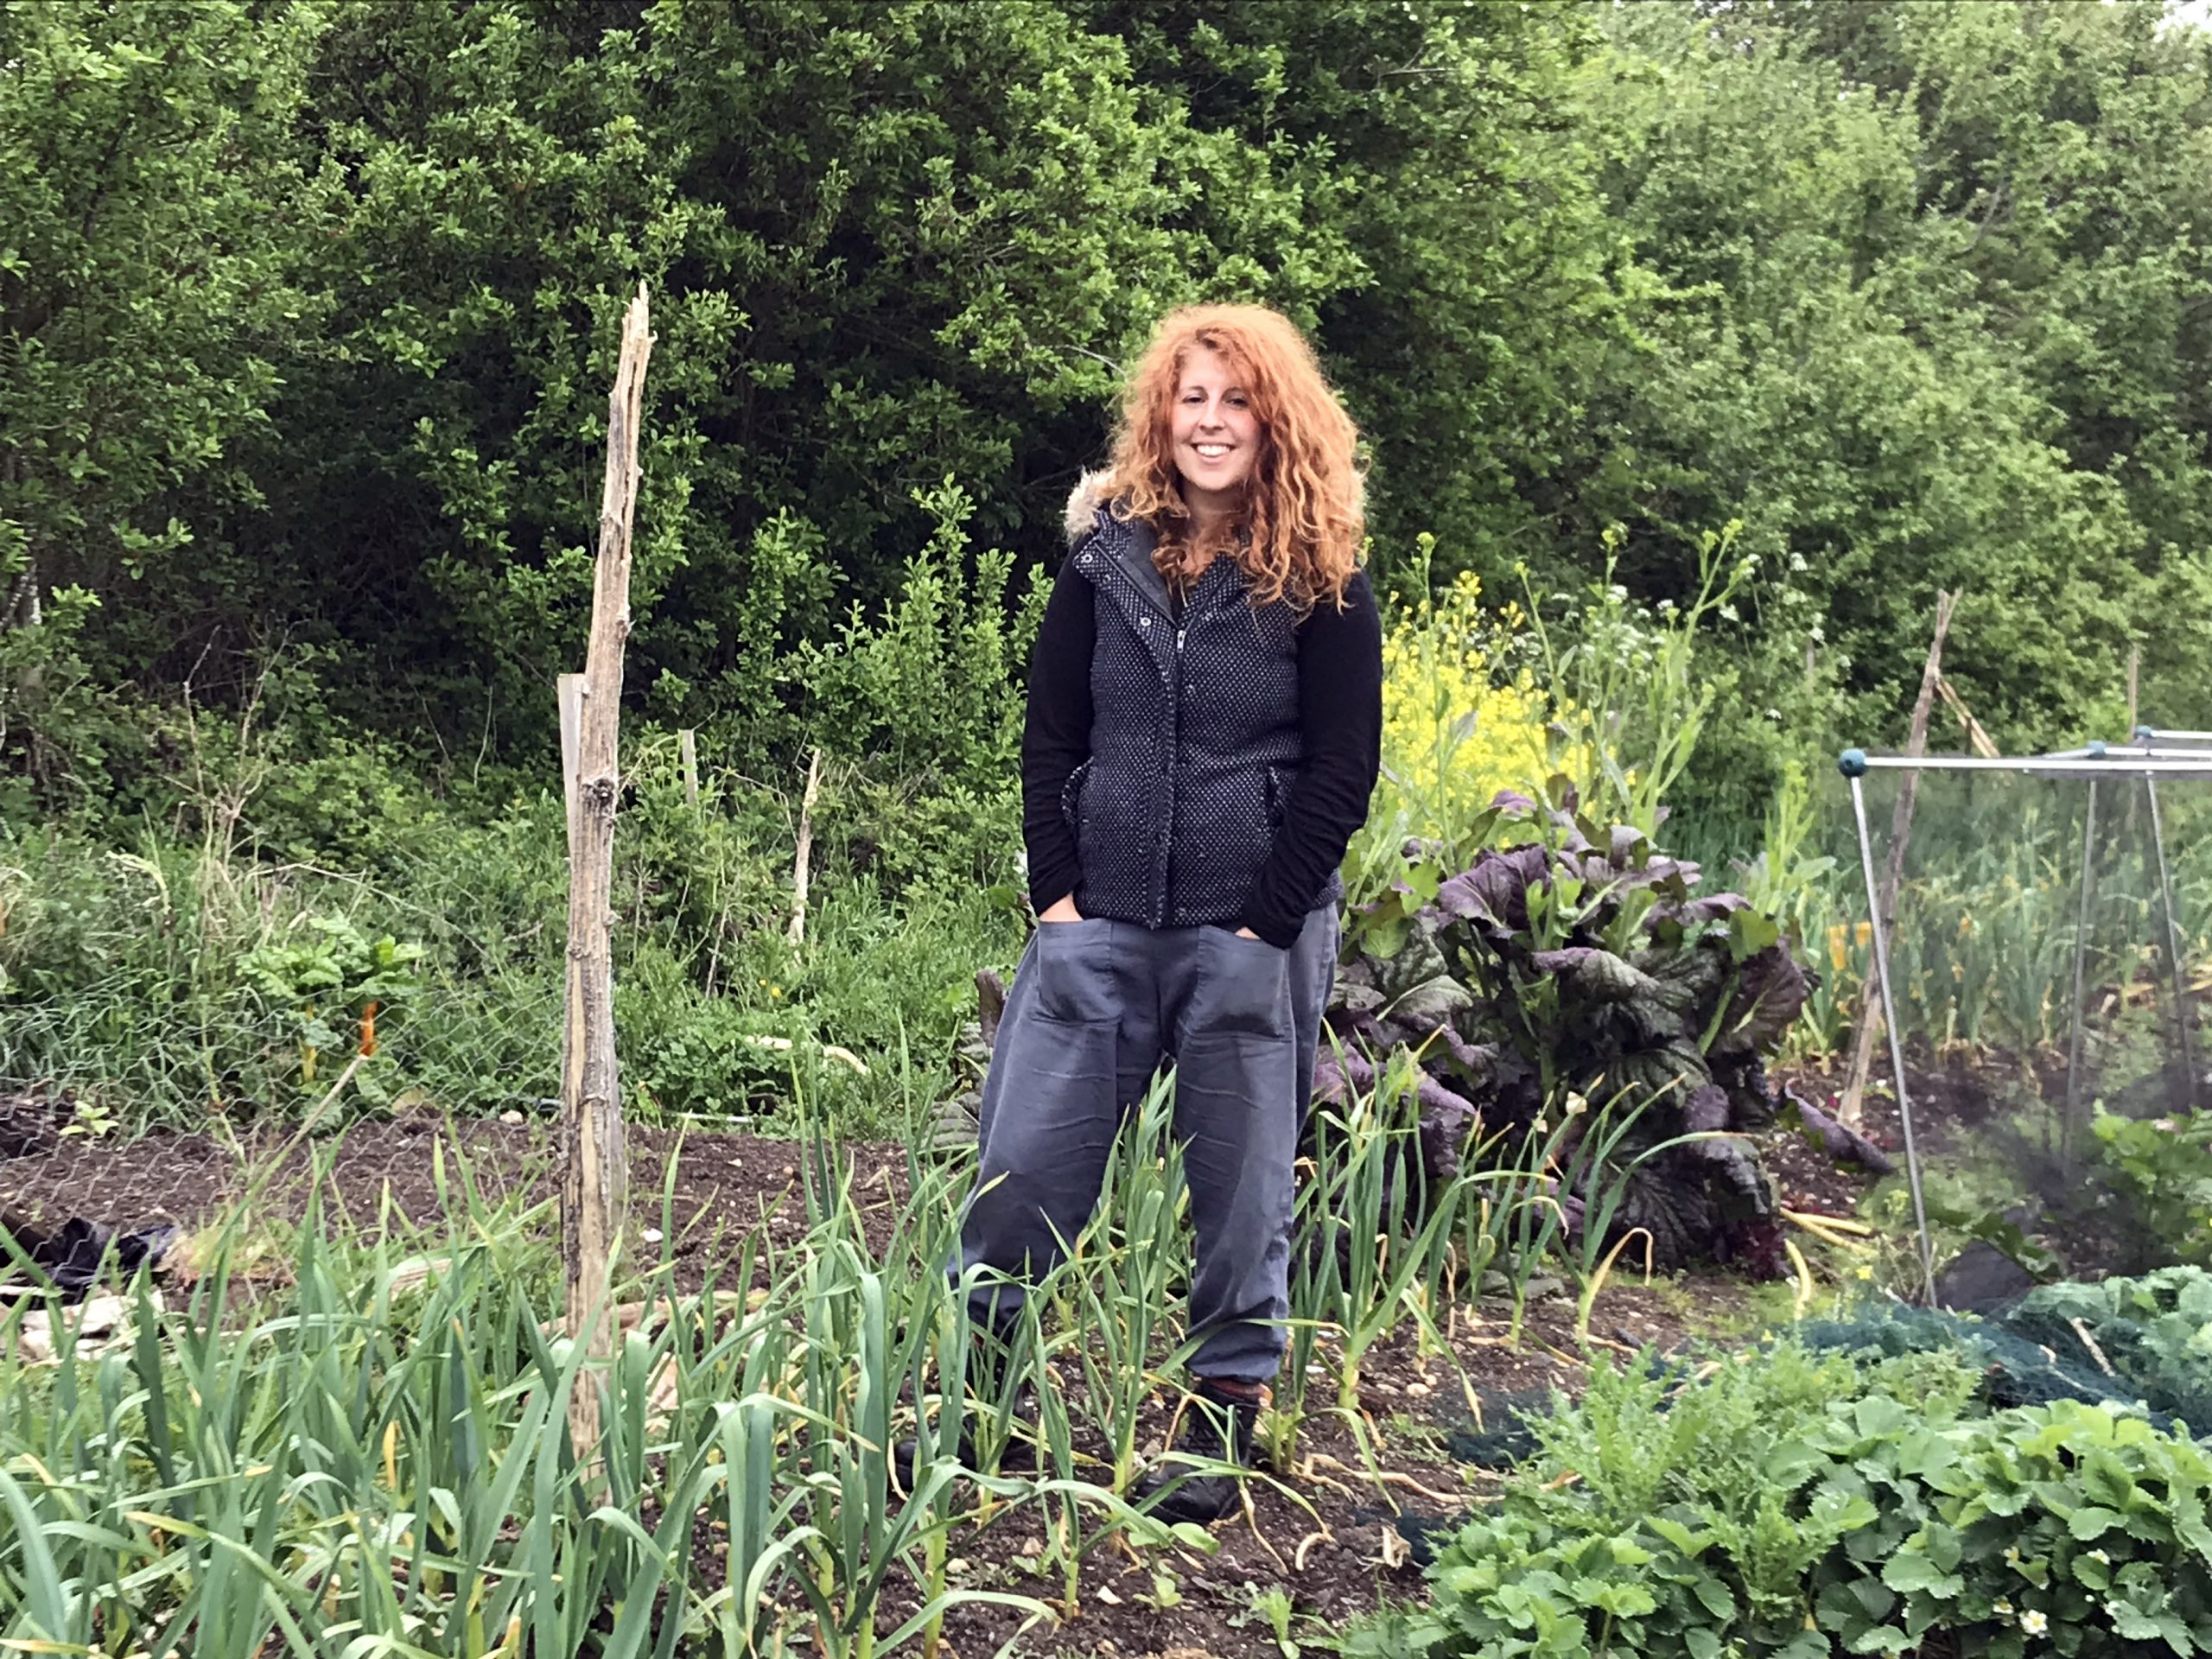 Talia Chain at Sadeh, the farm she founded, in Kent, Britain. RNS photo by Catherine Pepinster